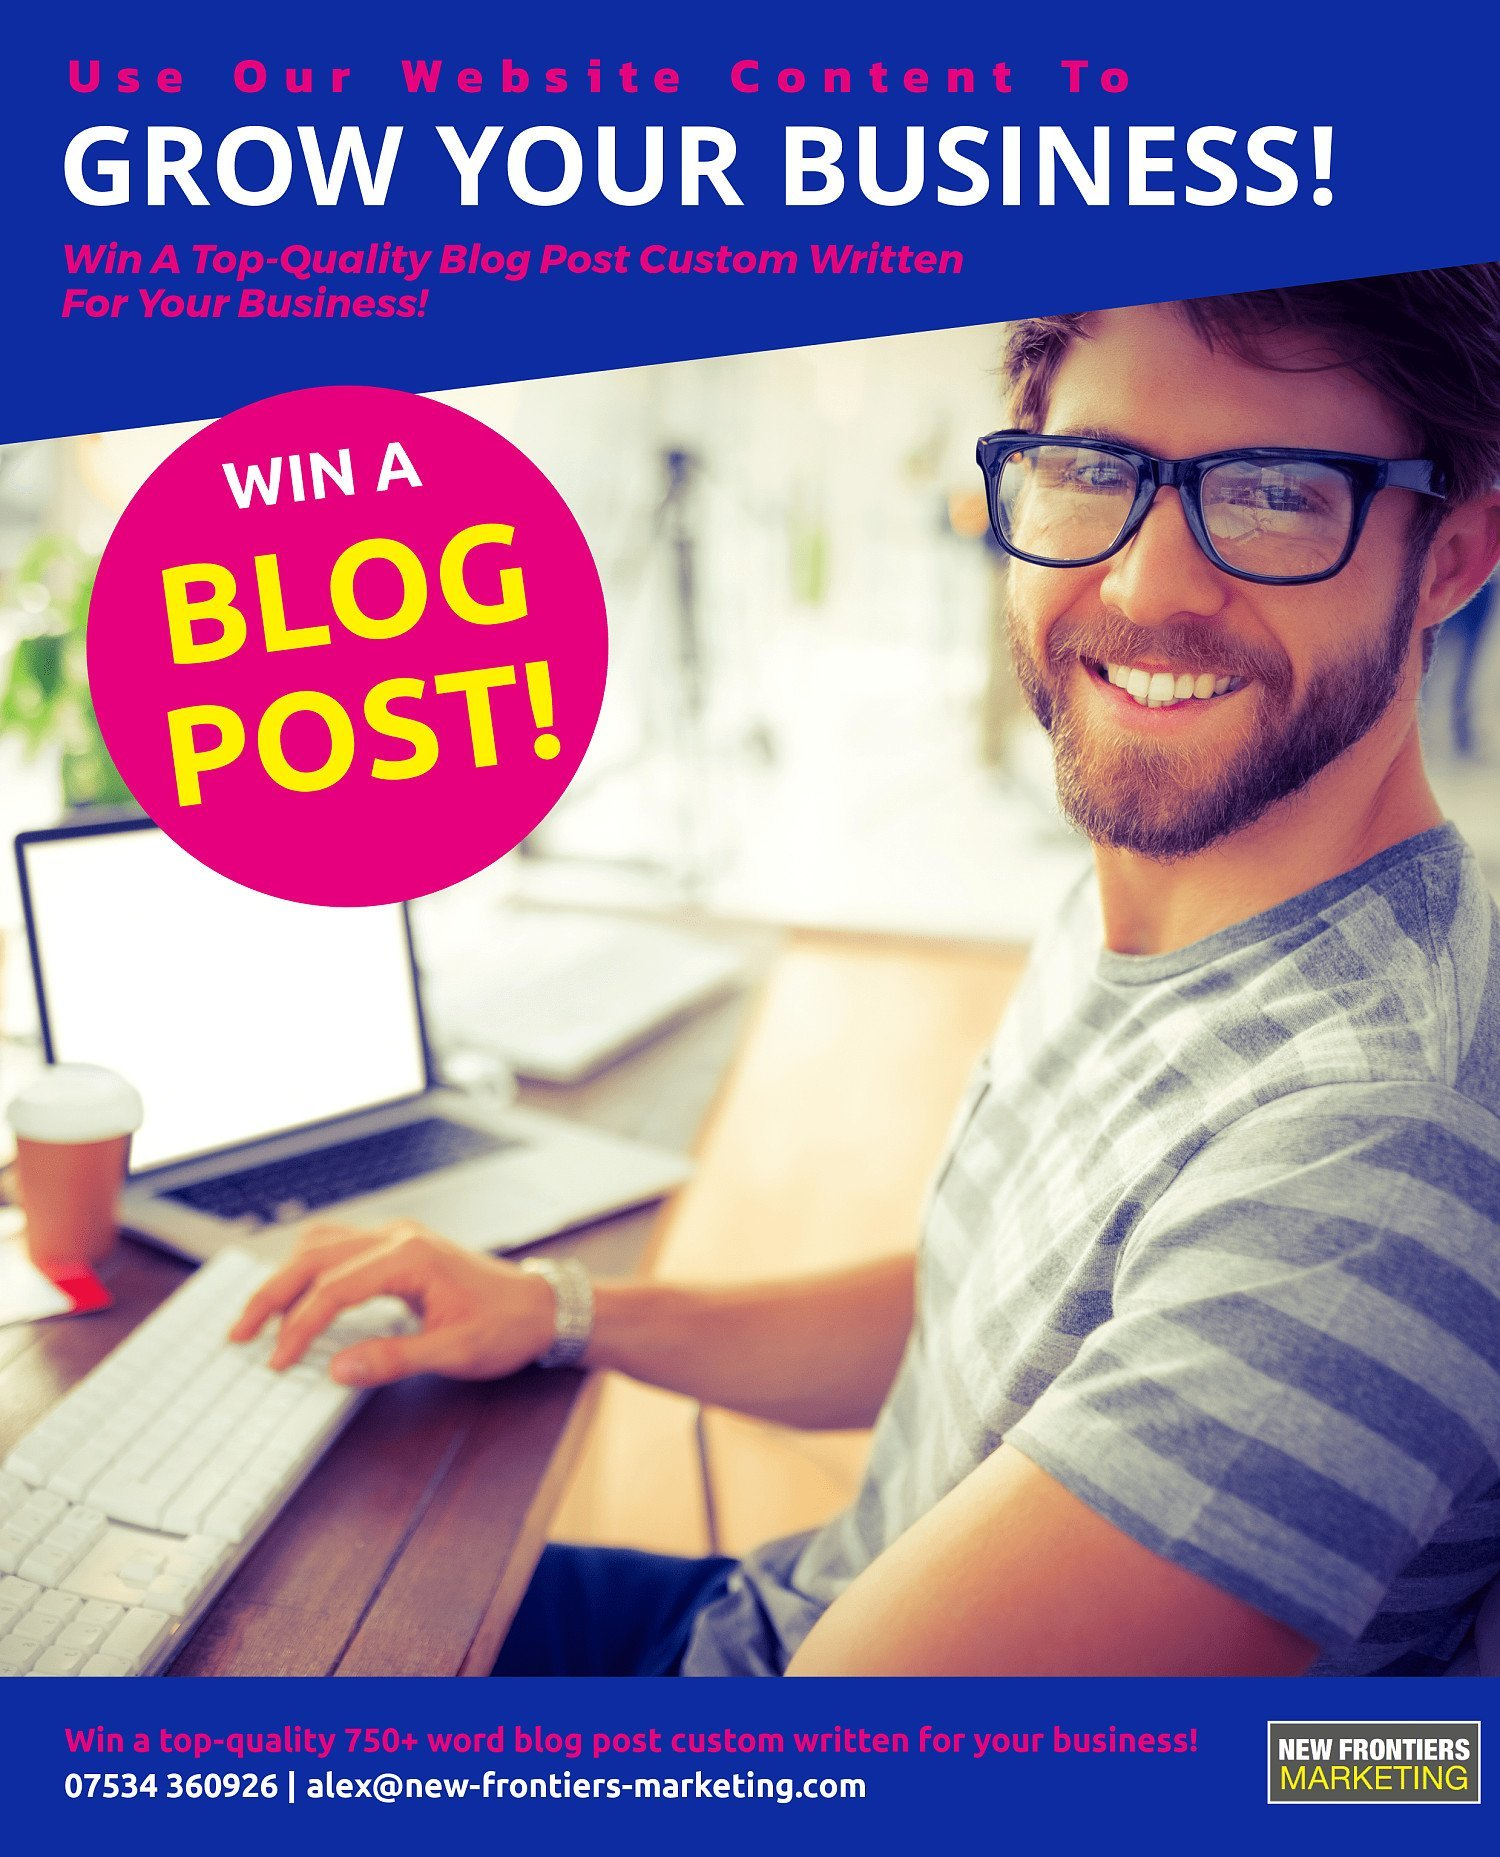 Win A Top-Quality Blog Post Custom Written For Your Business!